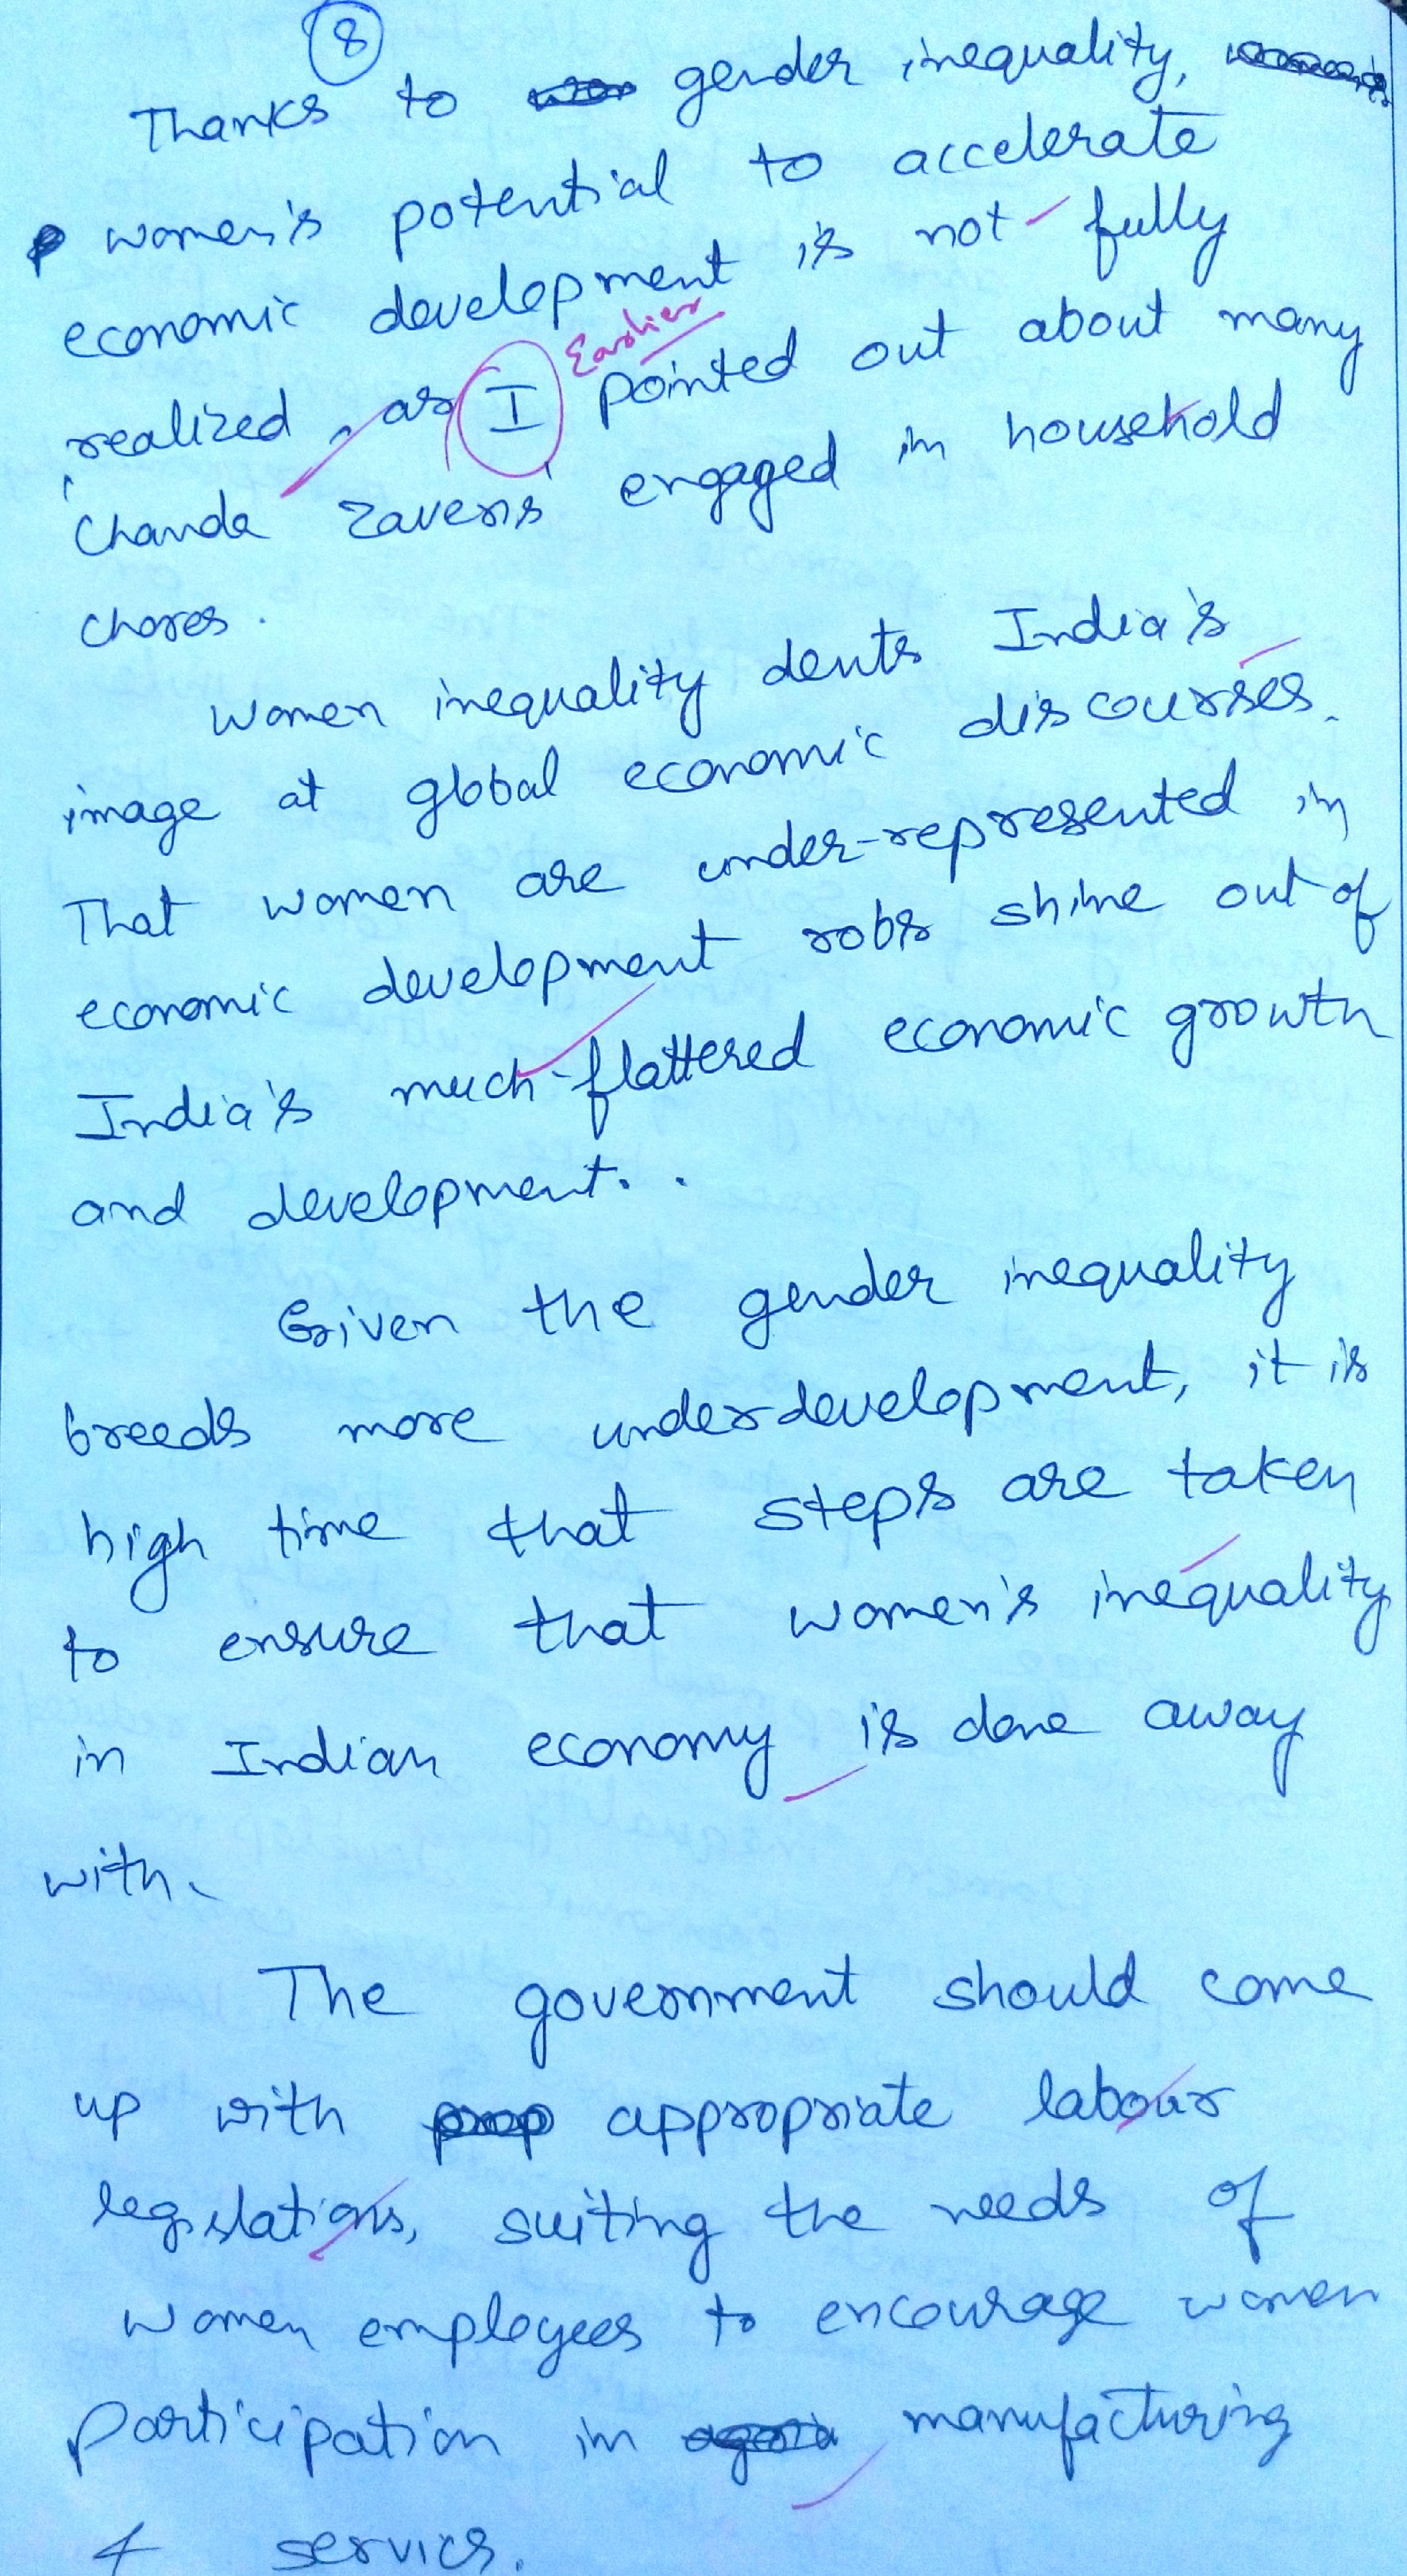 essay on women power power essay antigone cover letter work  sample essay balaji d k ias rank 36 cse 2014 insights hrvj2a6ye018babw1tke1djf y9aaslw0c318bfeb8hhw7d1g